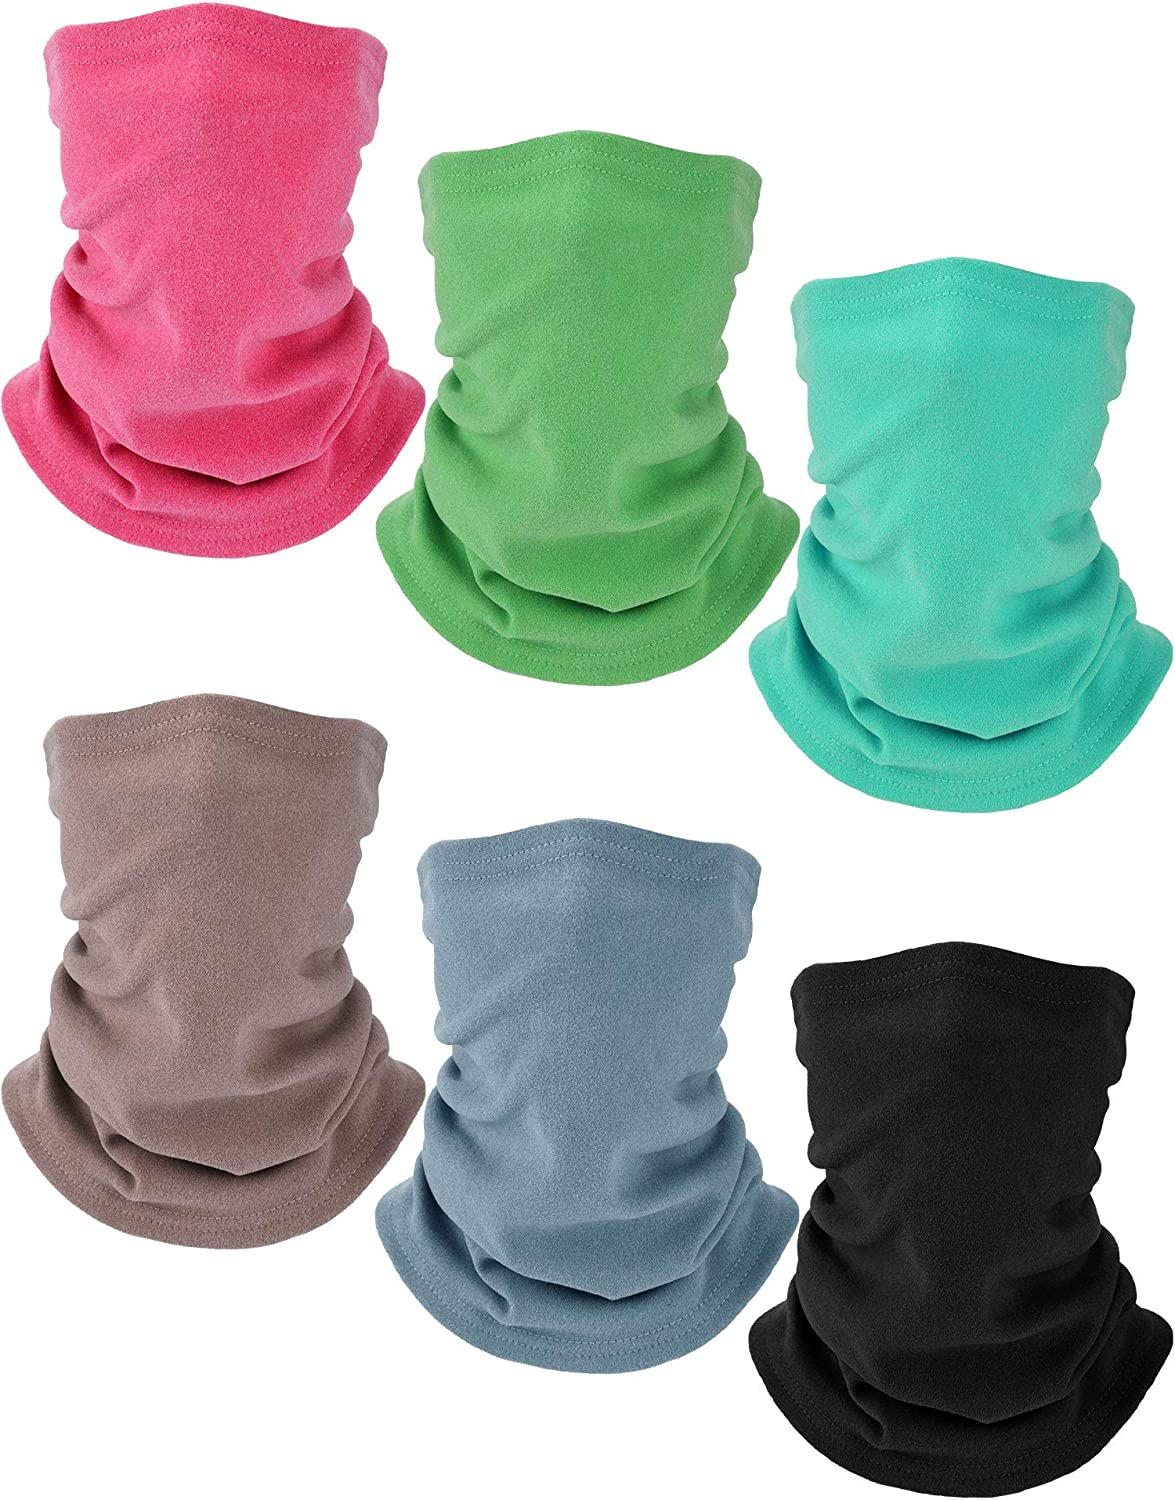 Boyiee 6 Pieces Kids Fleece Neck Gaiter Warmer Ski Tube Scarf Cold Weather Face Cover (Pink, Green, Glaucous, Turquoise, Light Gray, Gray)